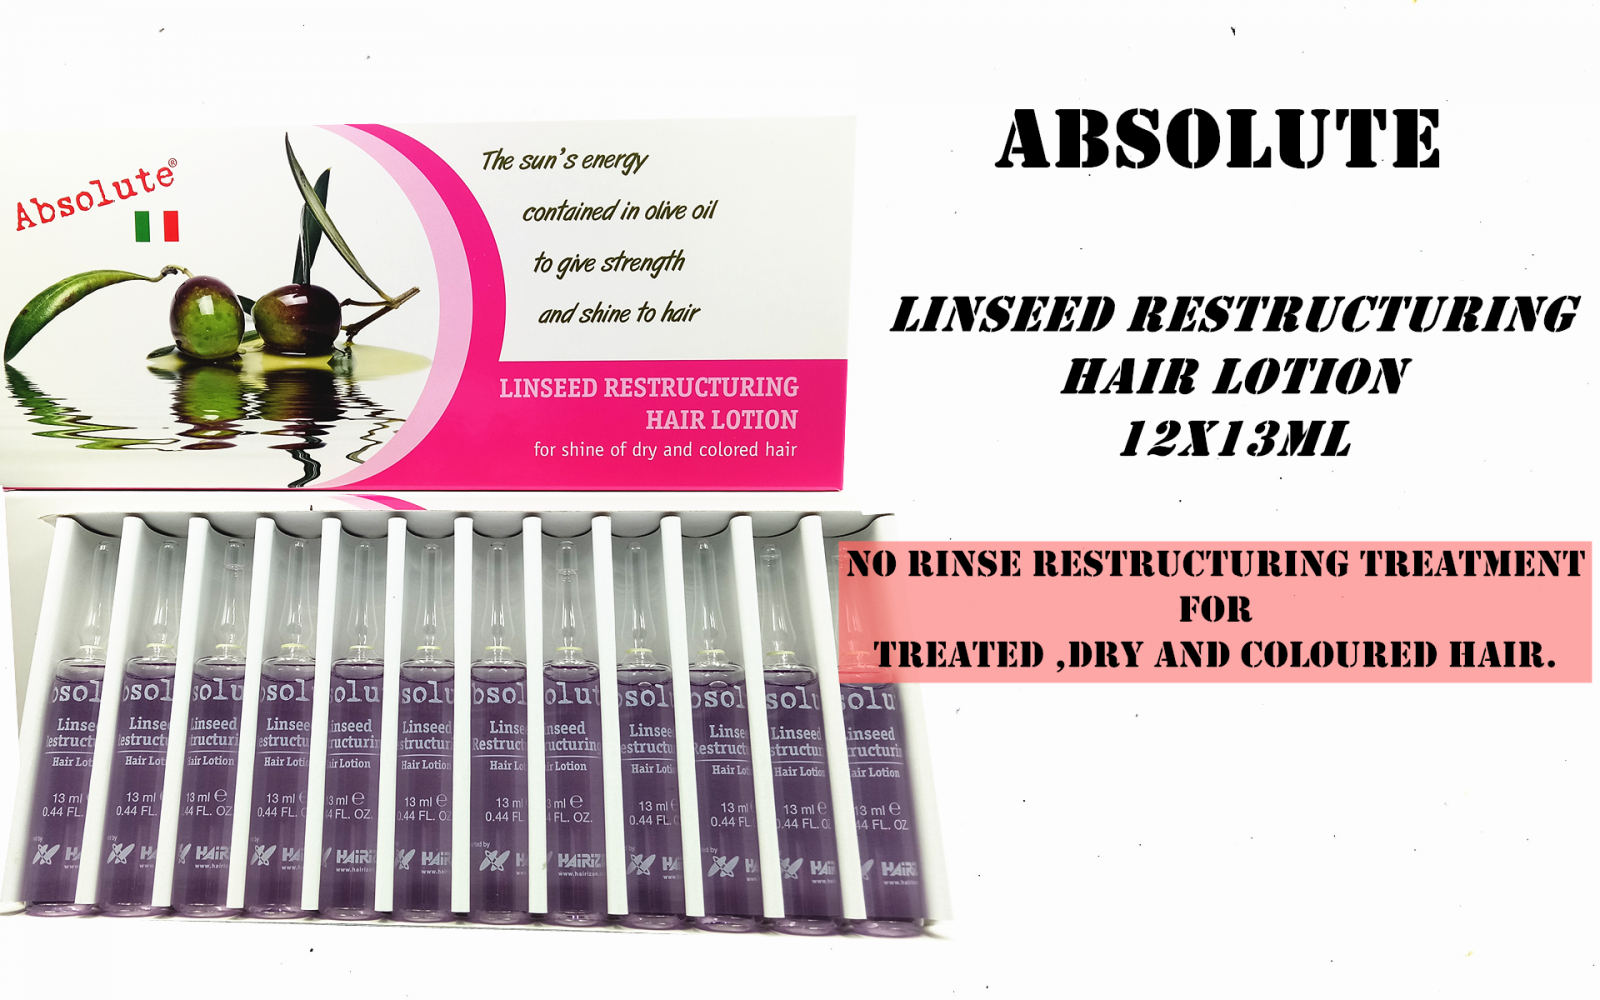 Absolute Linssed Restructuring Hair Lotion 12X13ML